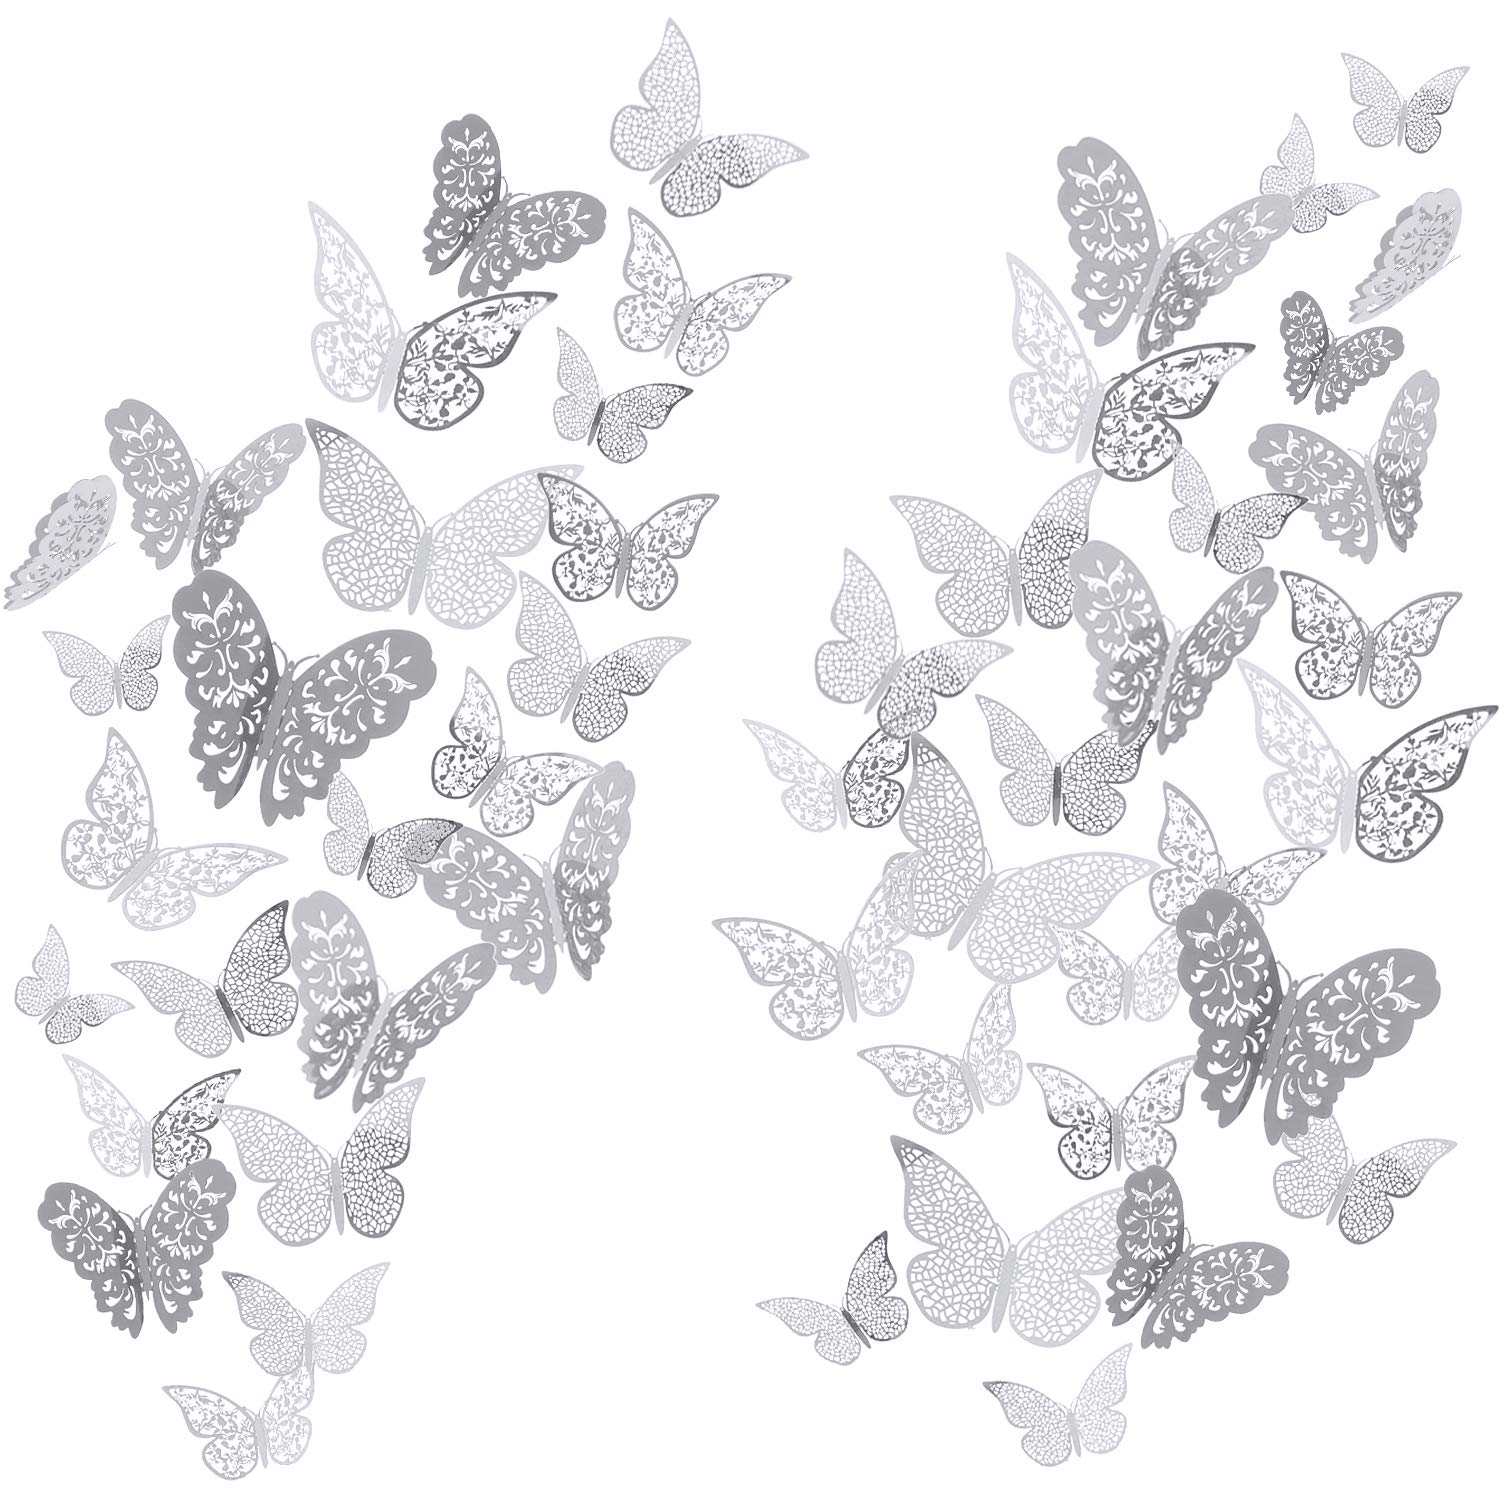 Butterfly Wall Decals from Amazon